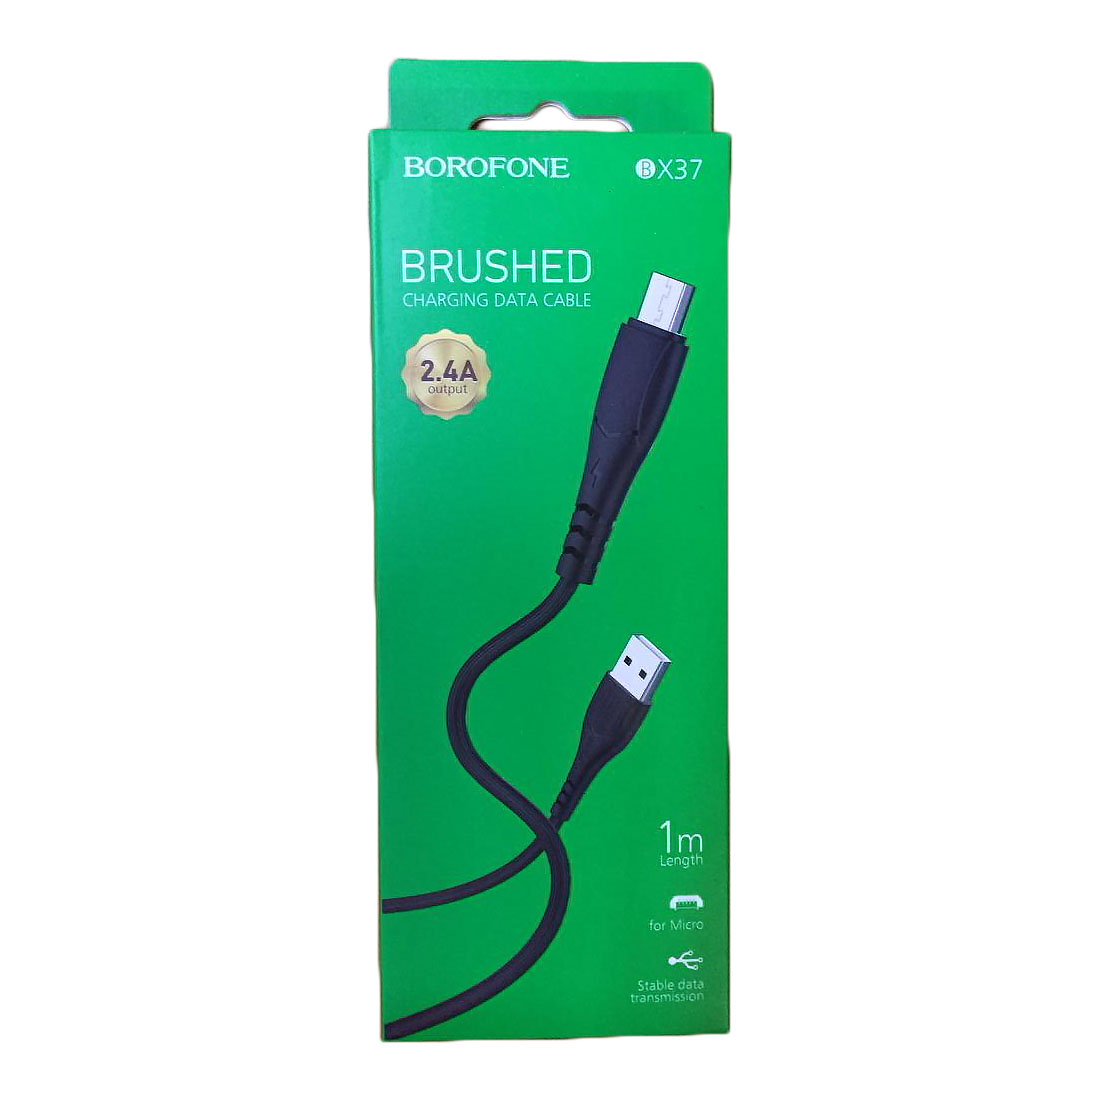 CABLE MICRO USB DATA & CHARGE FOR SMARTPHONE BOROFONE 2.4A BX 37 ,Other Smartphone Acc